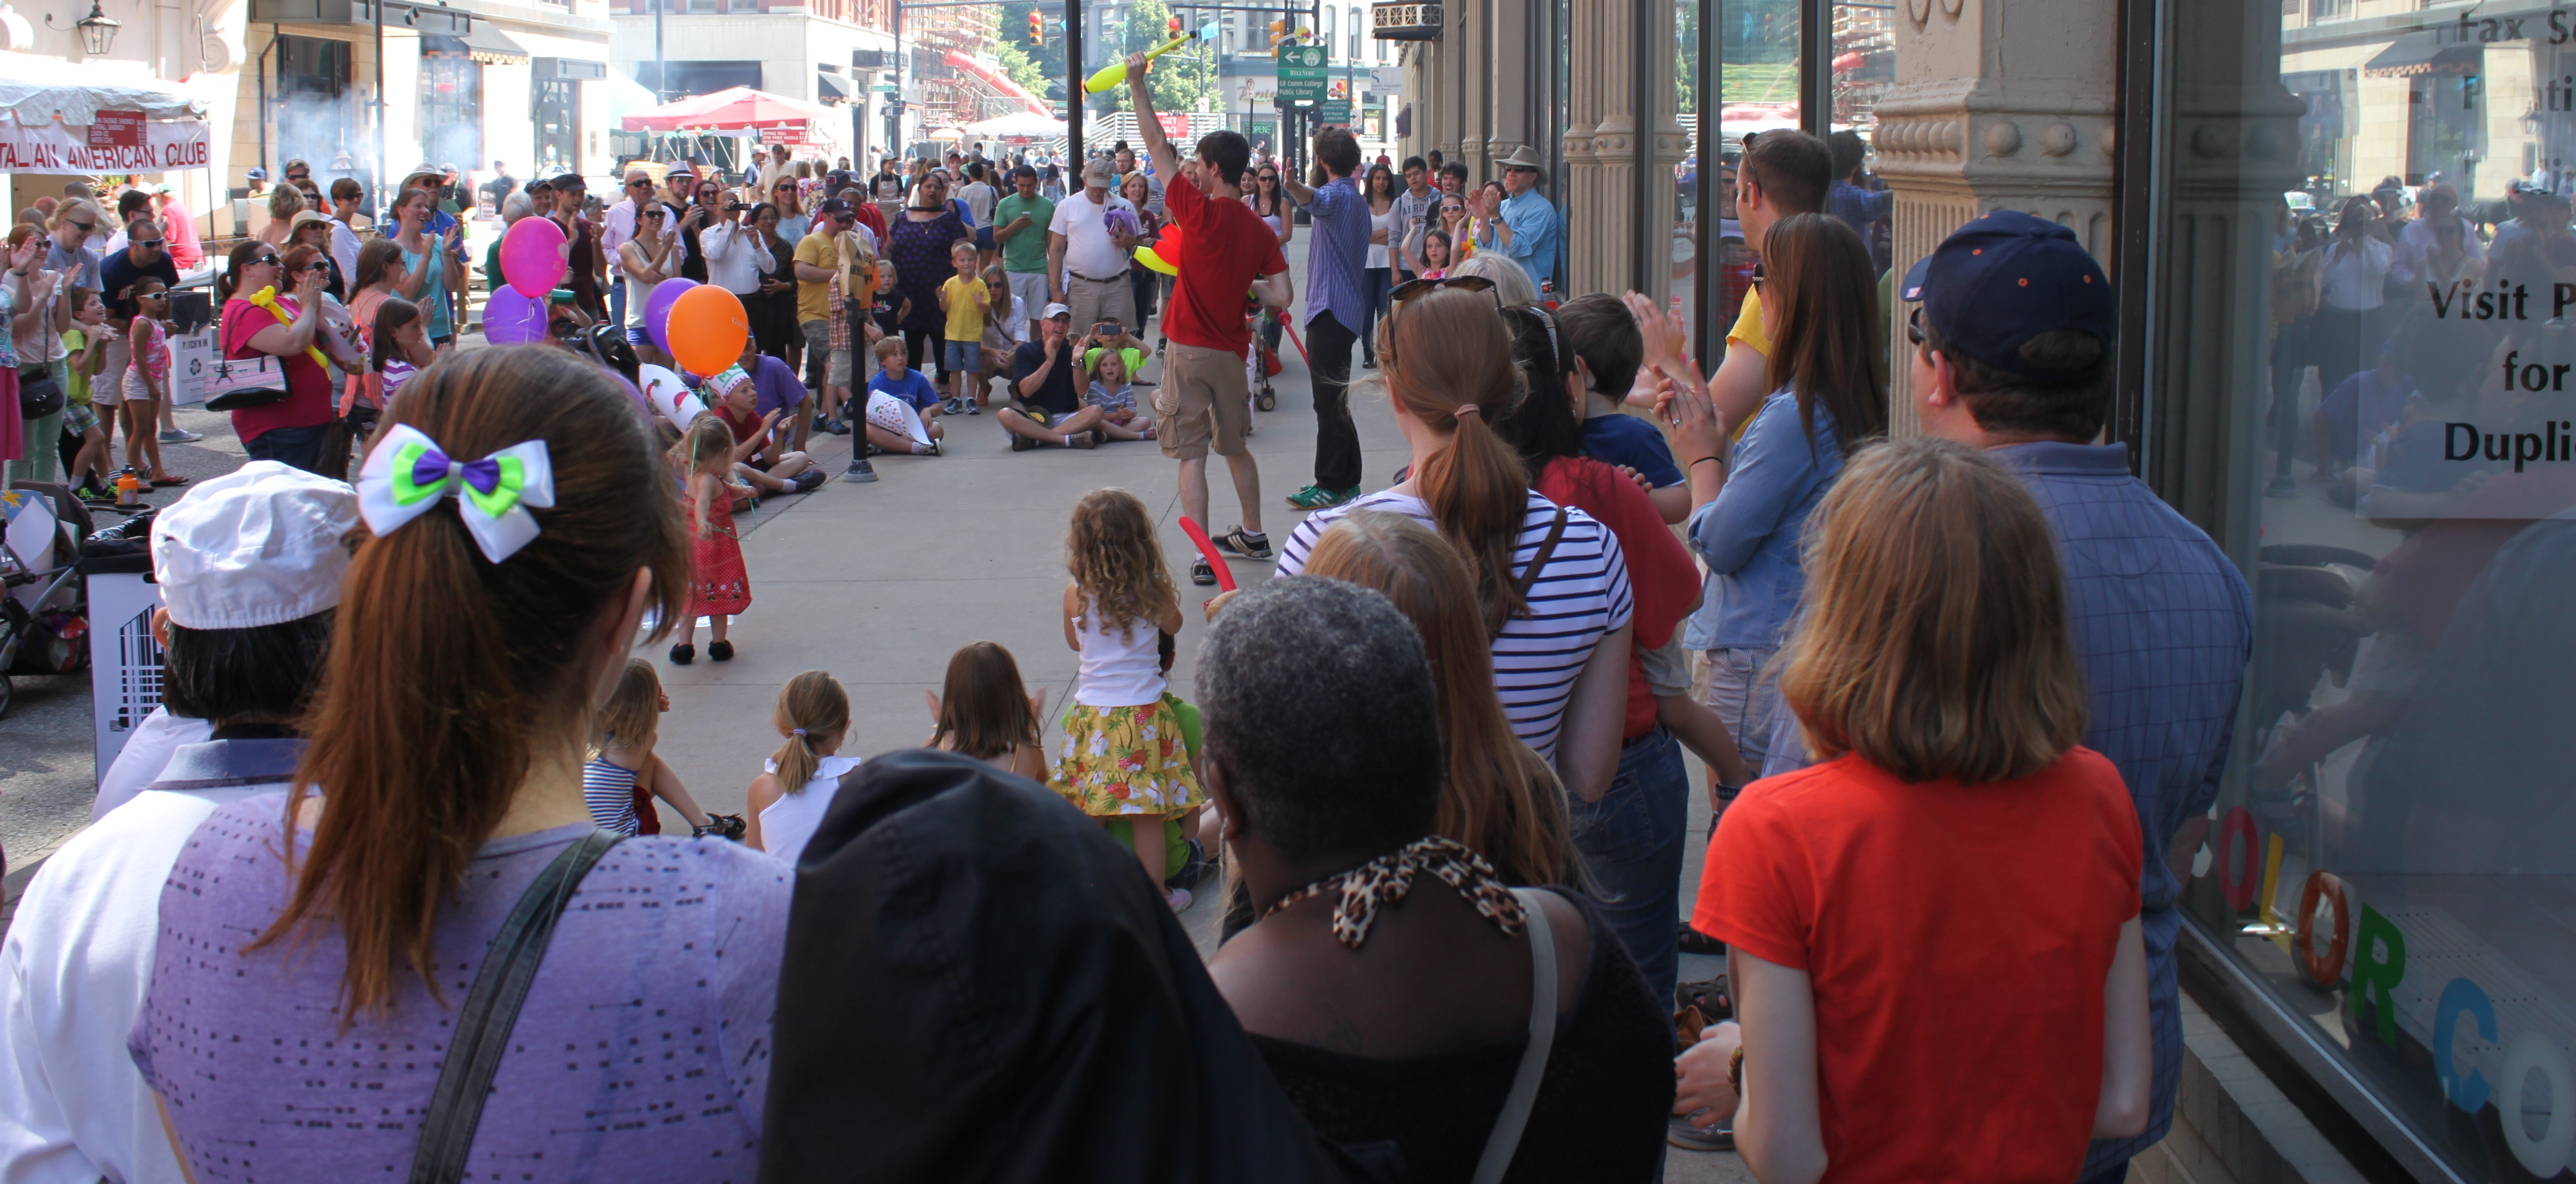 45th Annual Festival of the Arts takes over downtown Grand Rapids